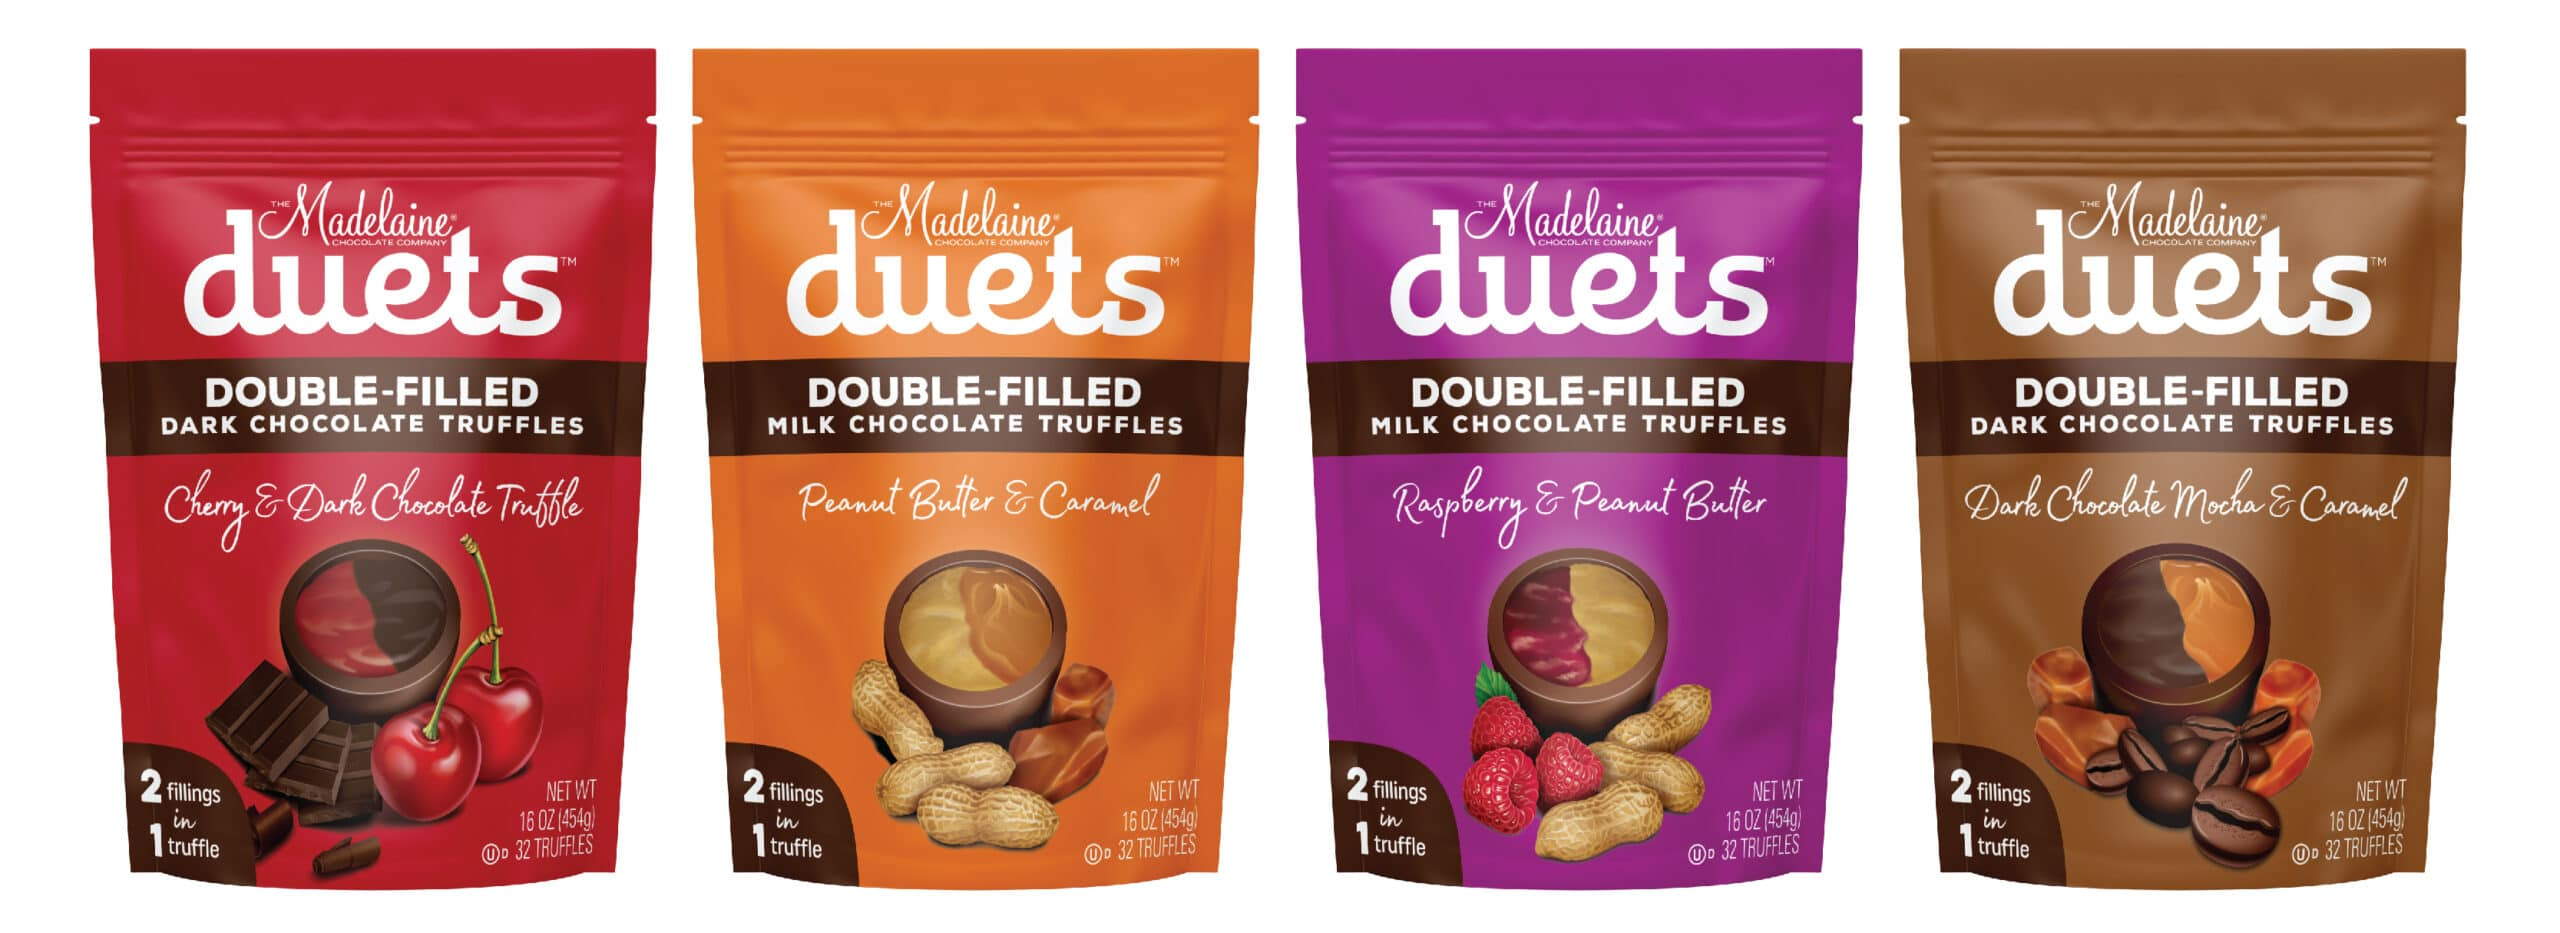 Chocolate Truffle Packaging Design